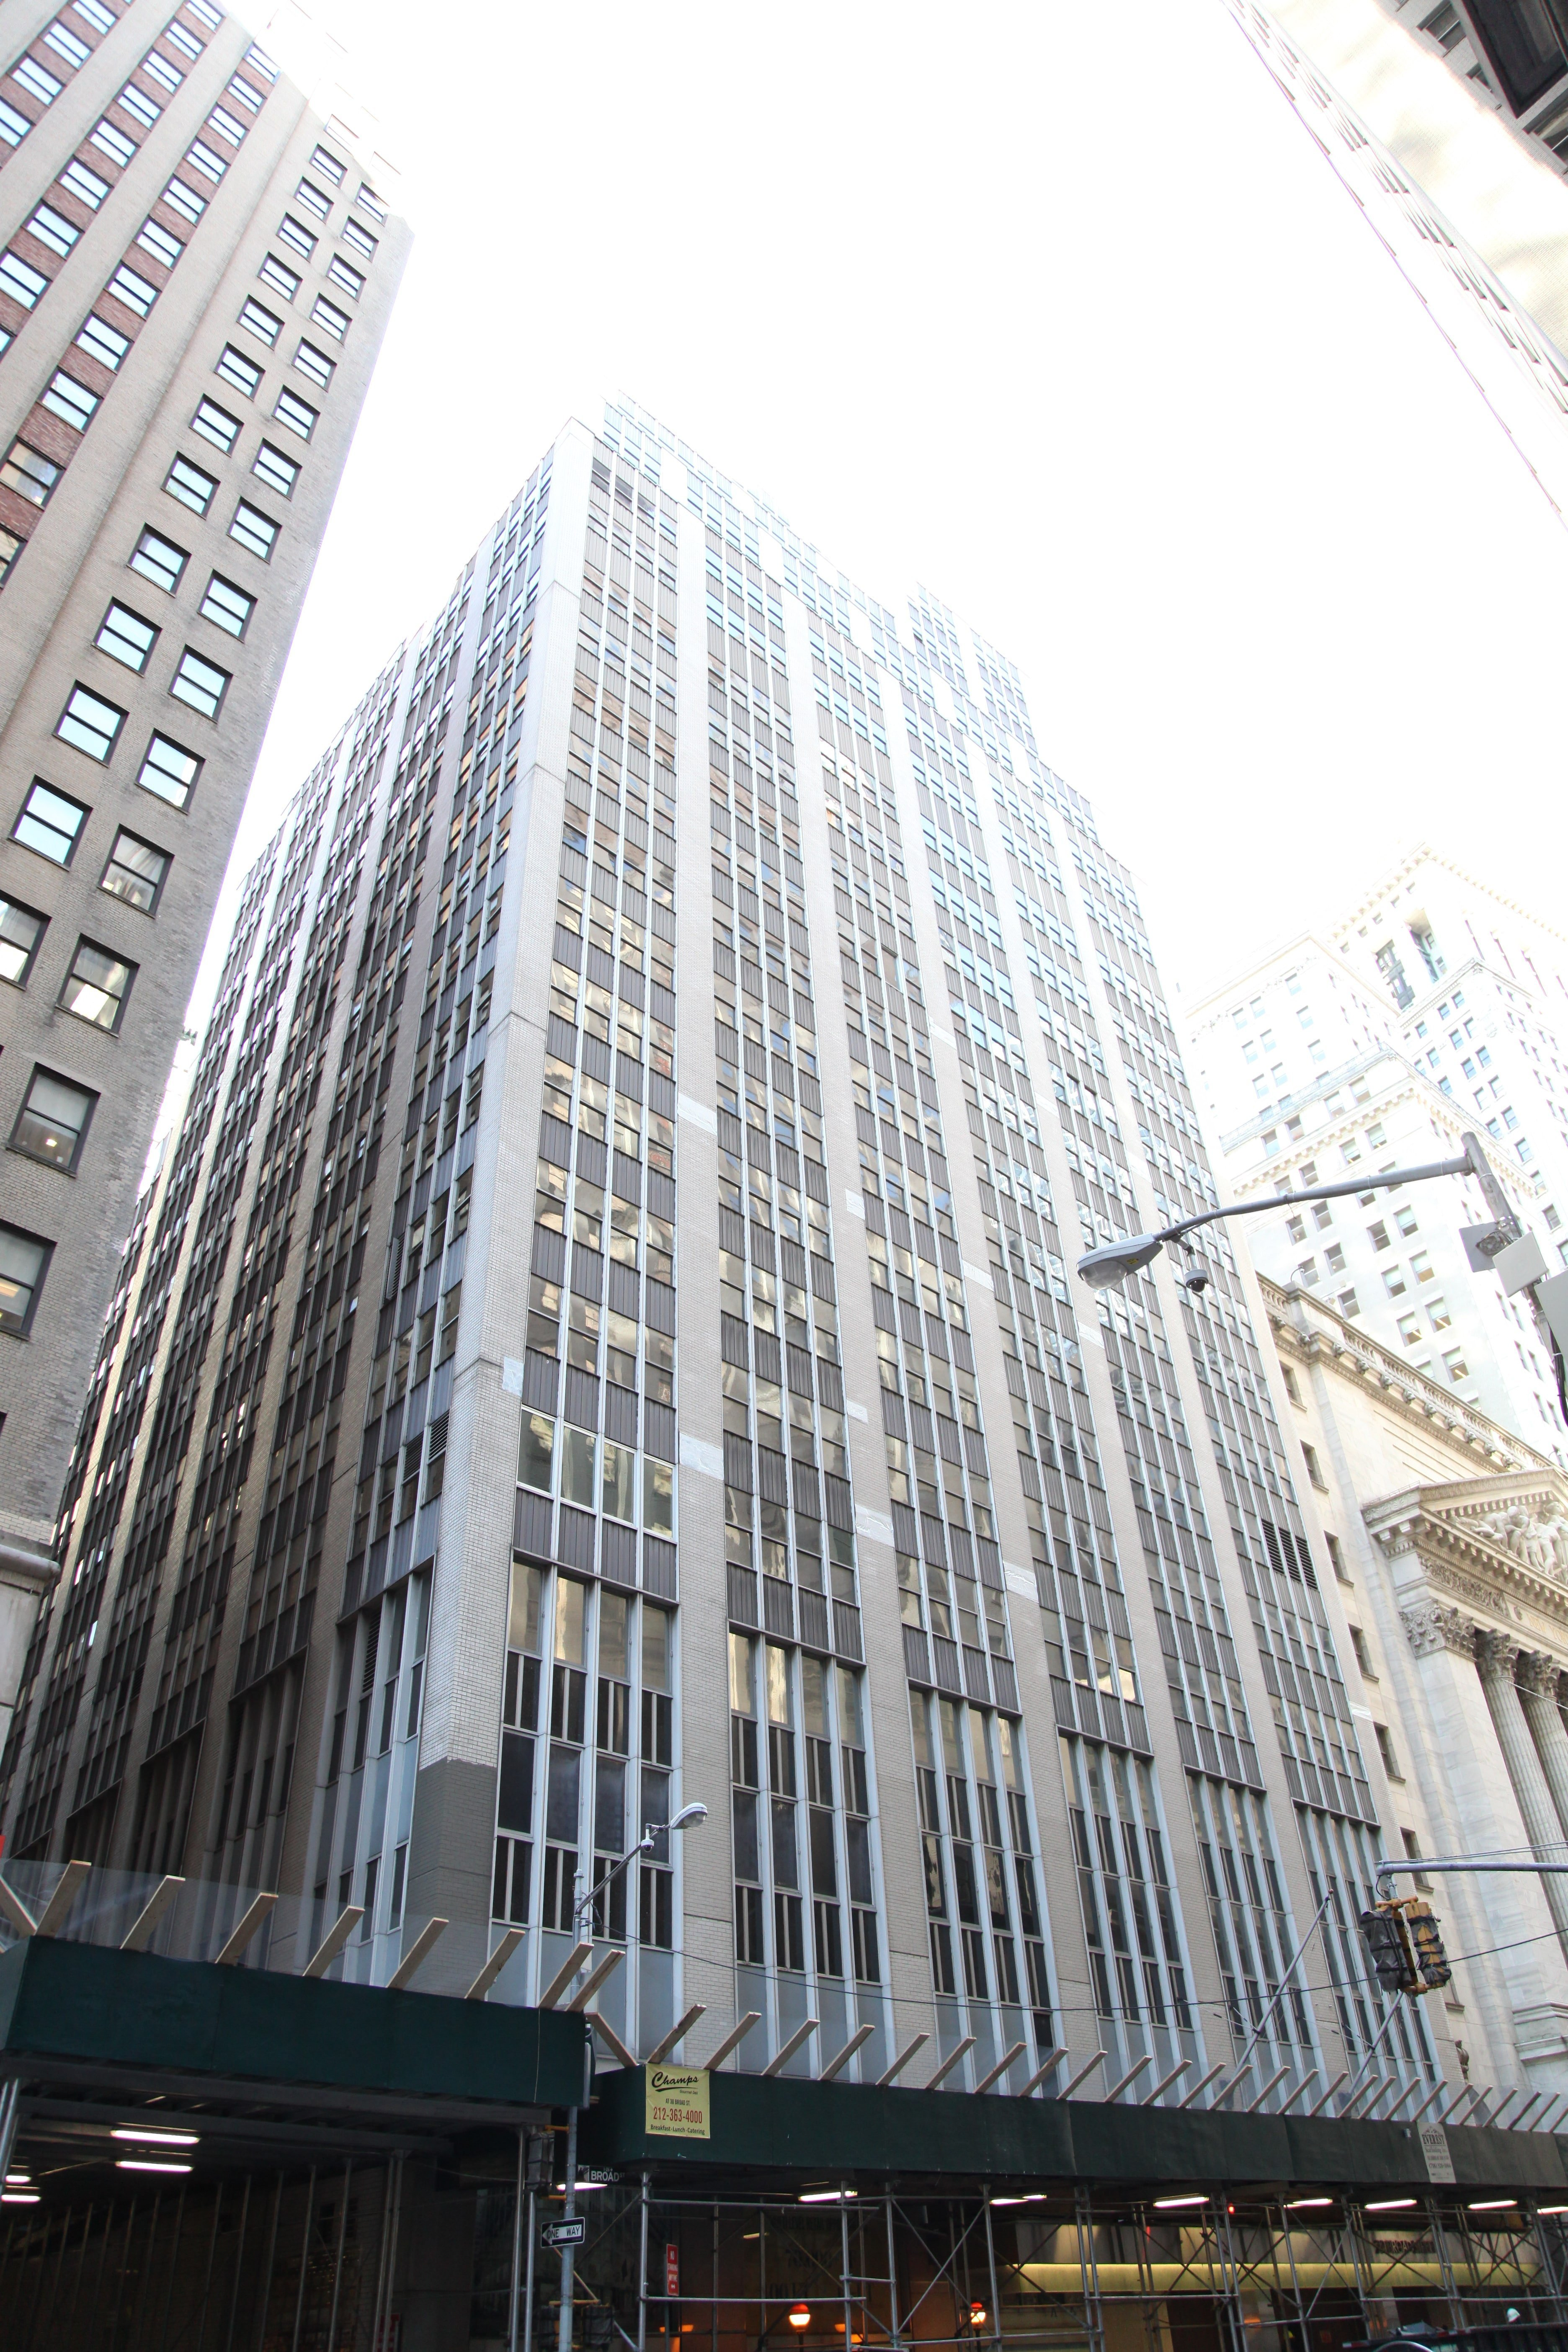 30 Broad Street, Financial District, New York, NY 10004 | SquareFoot